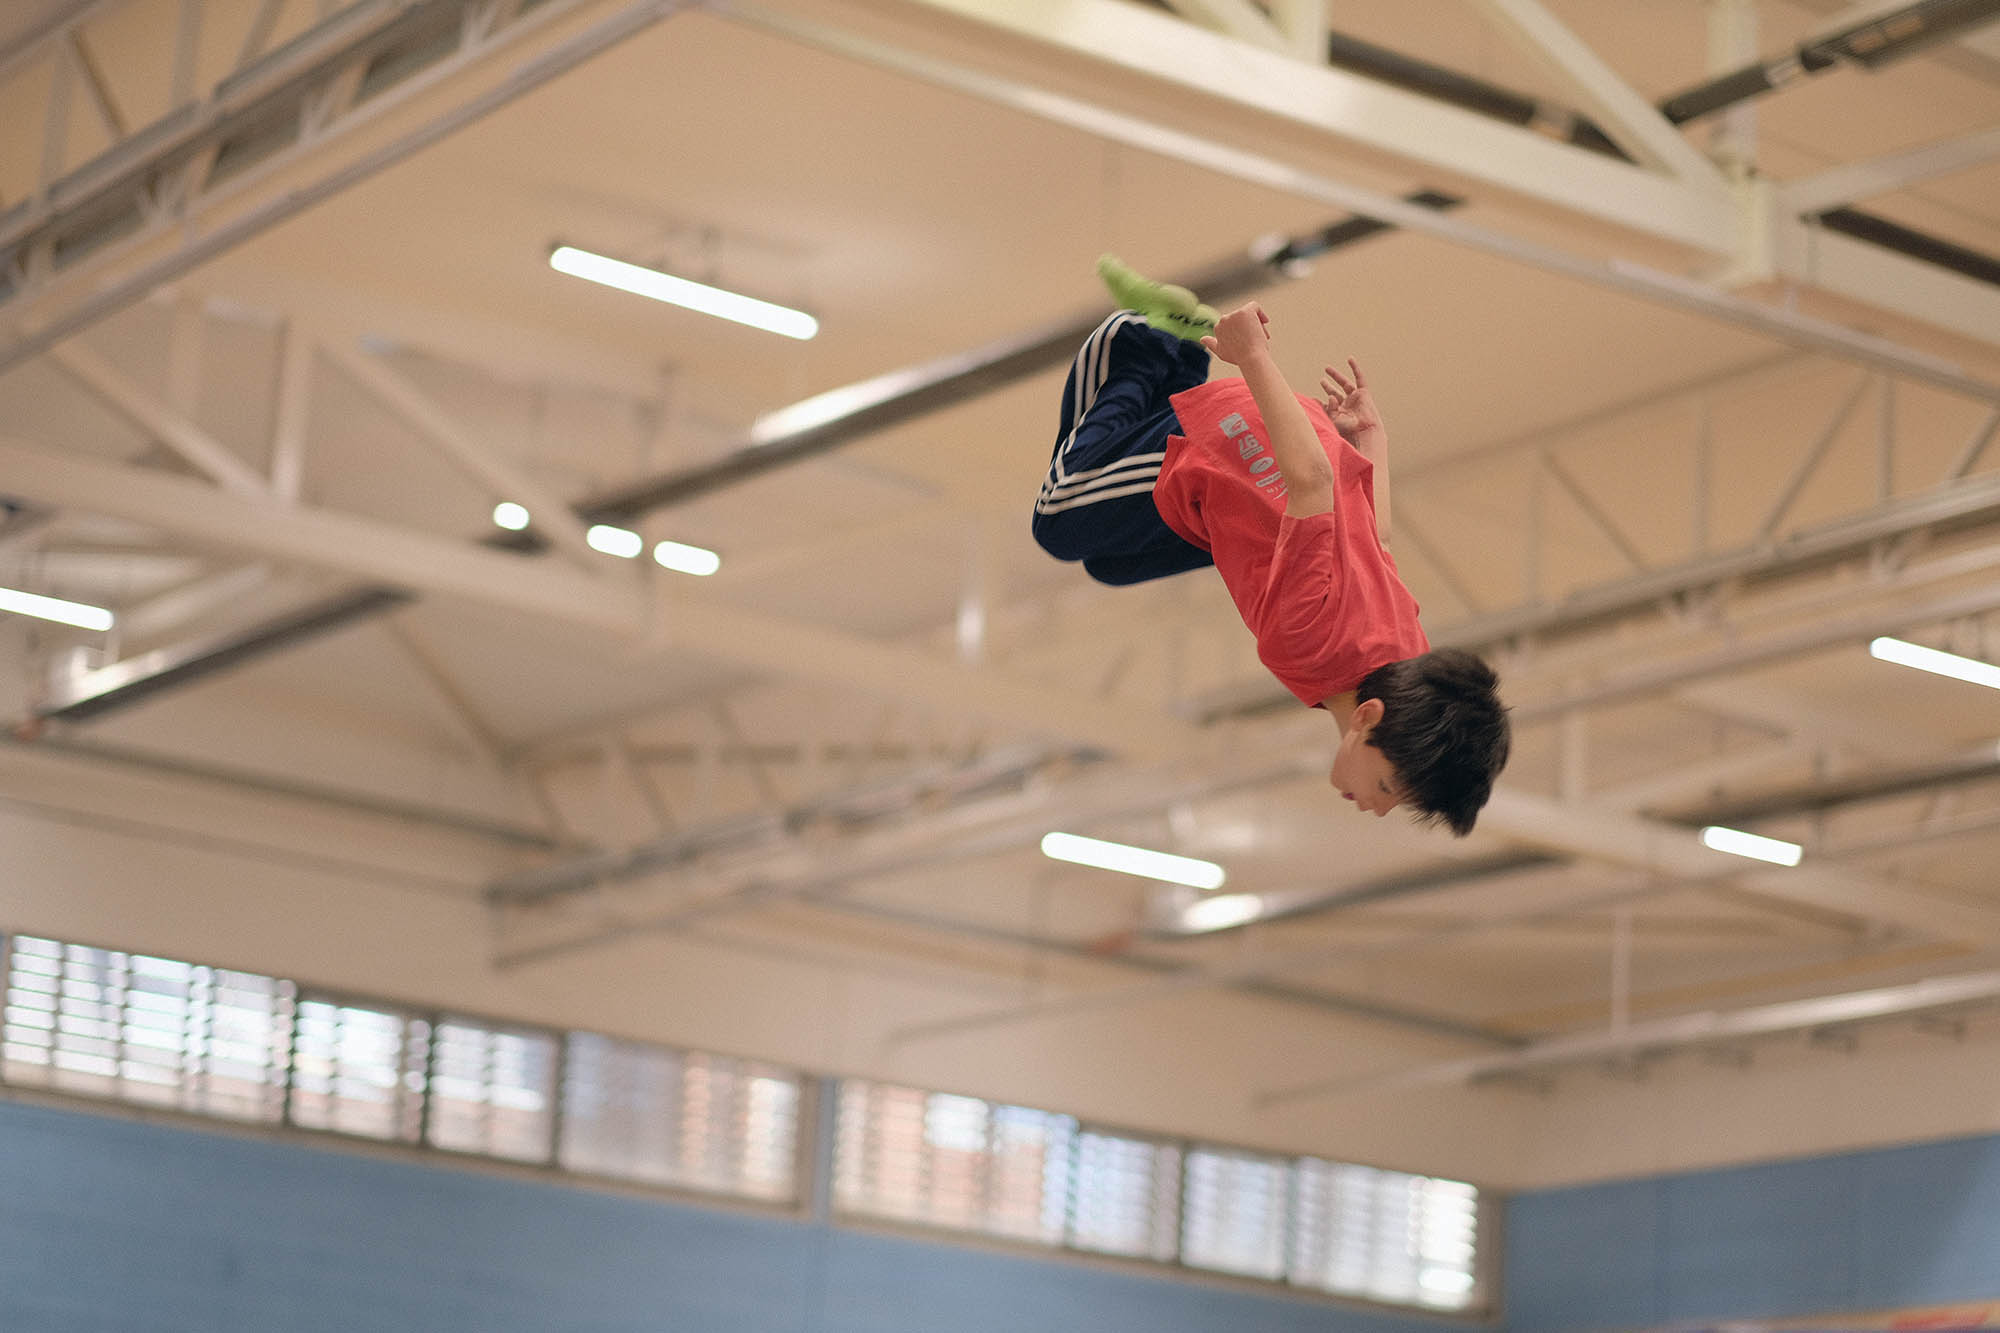 Jump For Fun trampoline classes at Kingston Trampoline Academy. One of the leading trampoline clubs in the UK.